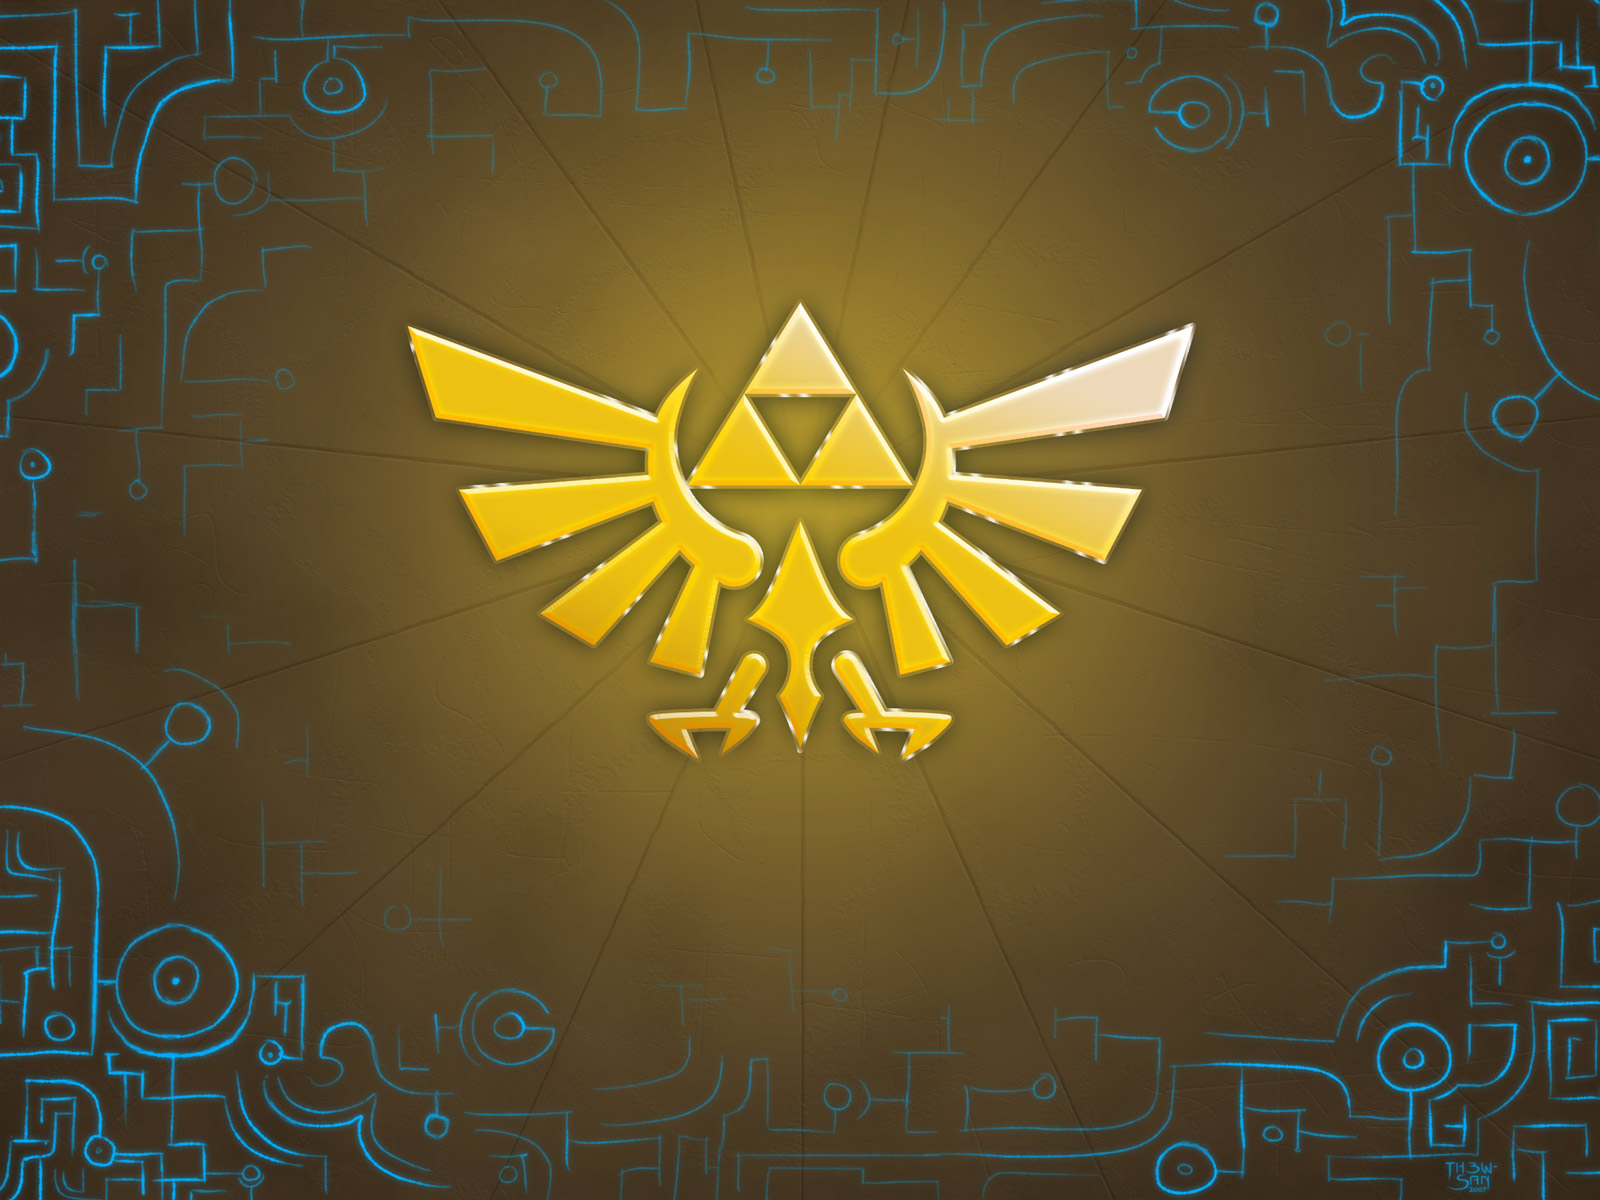 video game wallpaper share this video game background on facebook 1600x1200